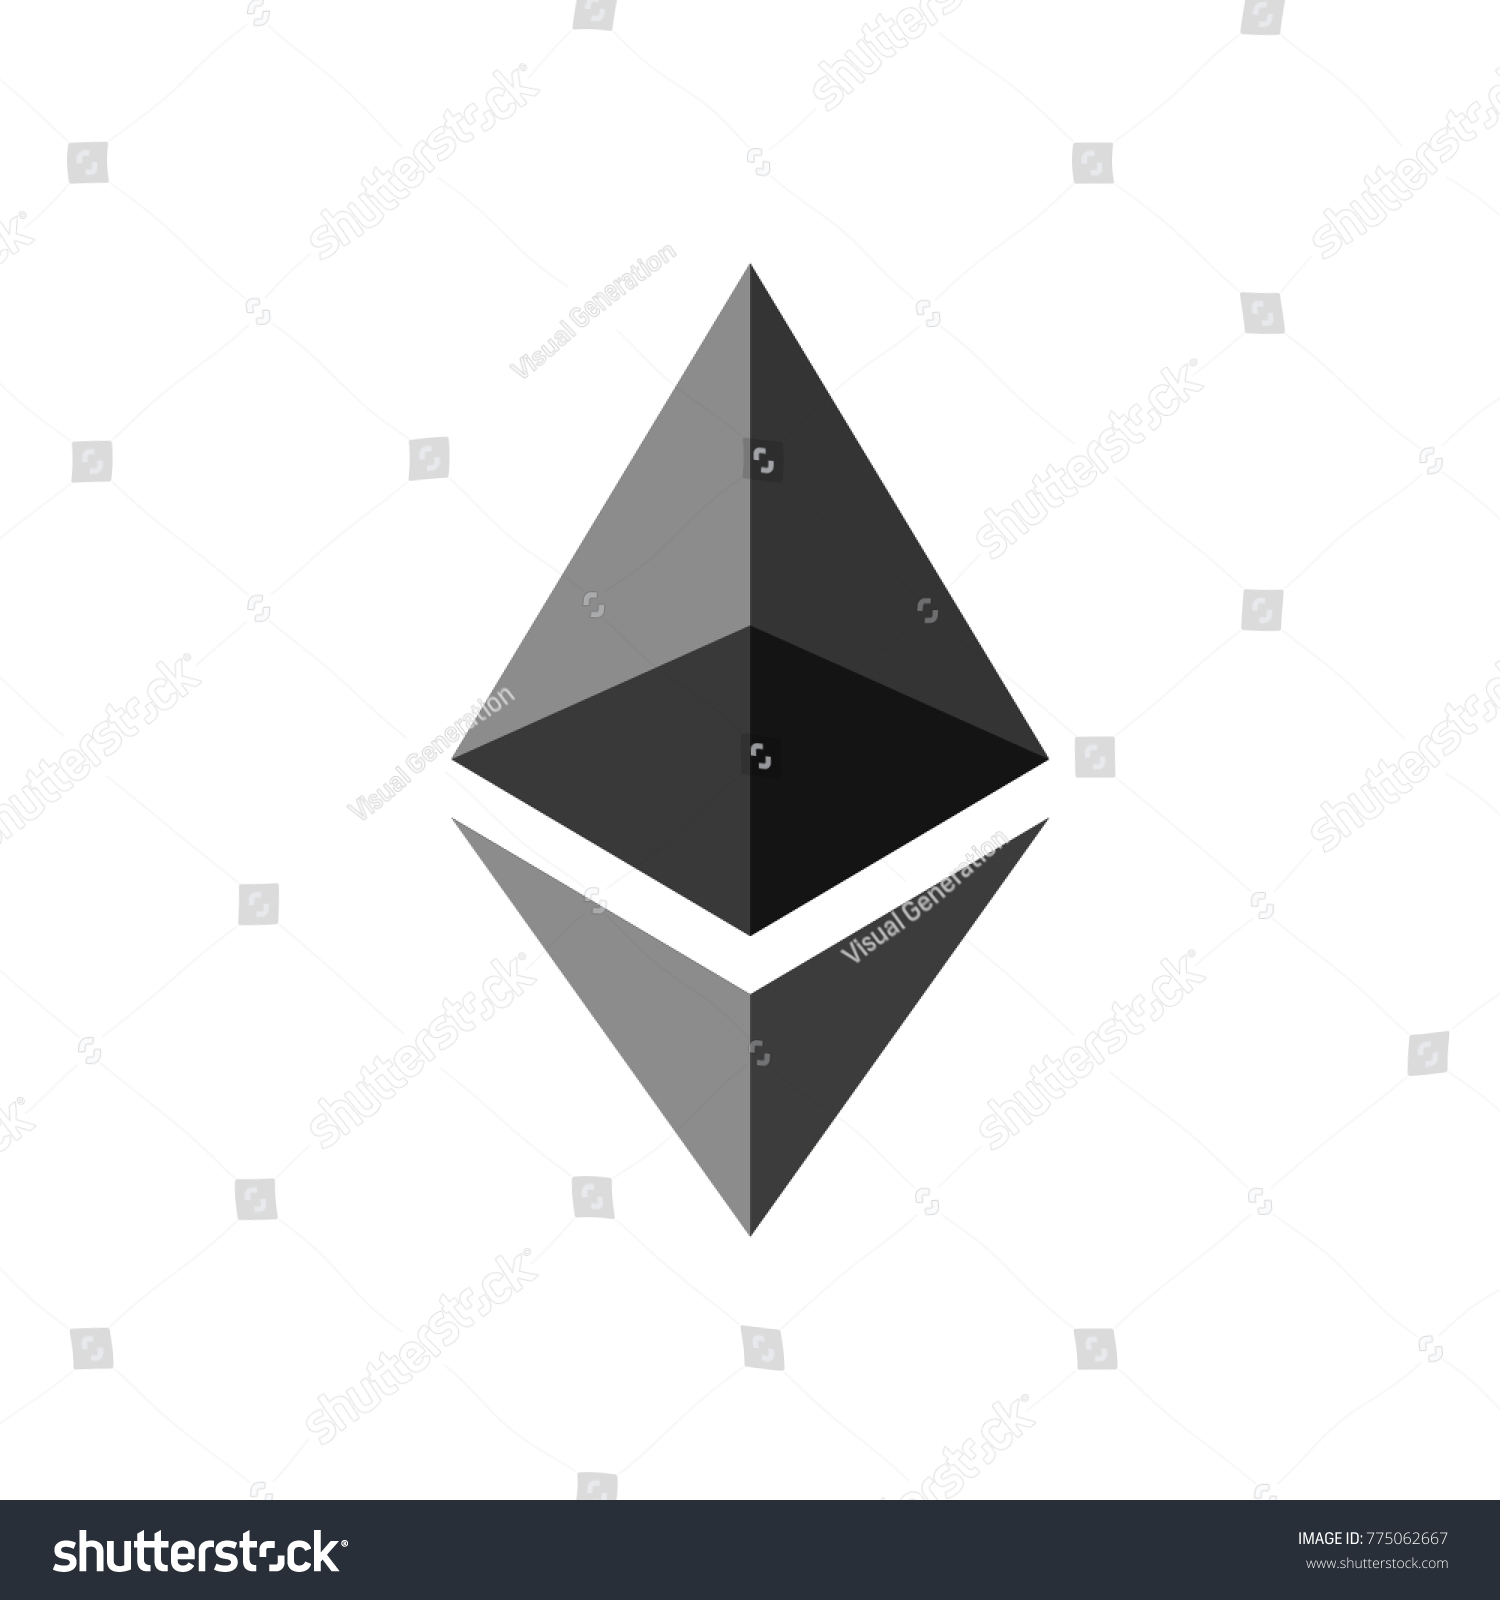 Ethereum Coin Symbol Logo Crypto Currency Stock Vector 775062667